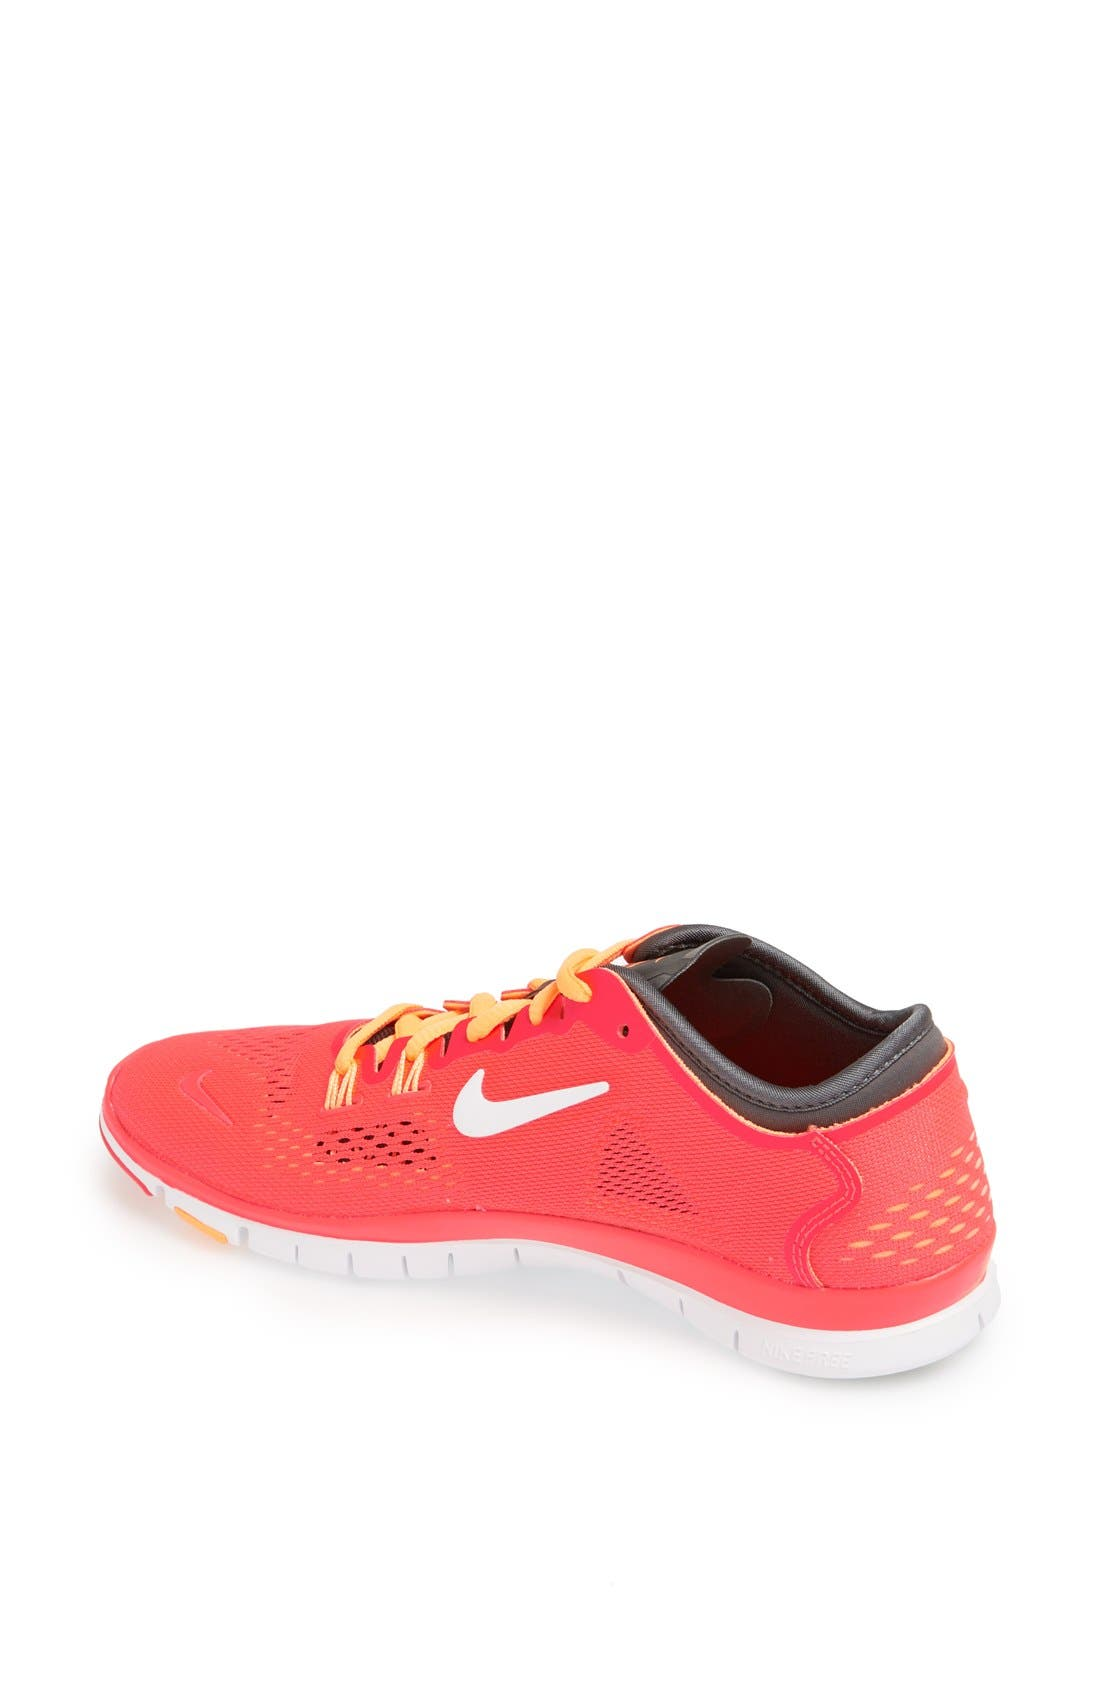 ,                             'Free 5.0 TR Fit 4' Training Shoe,                             Alternate thumbnail 67, color,                             618